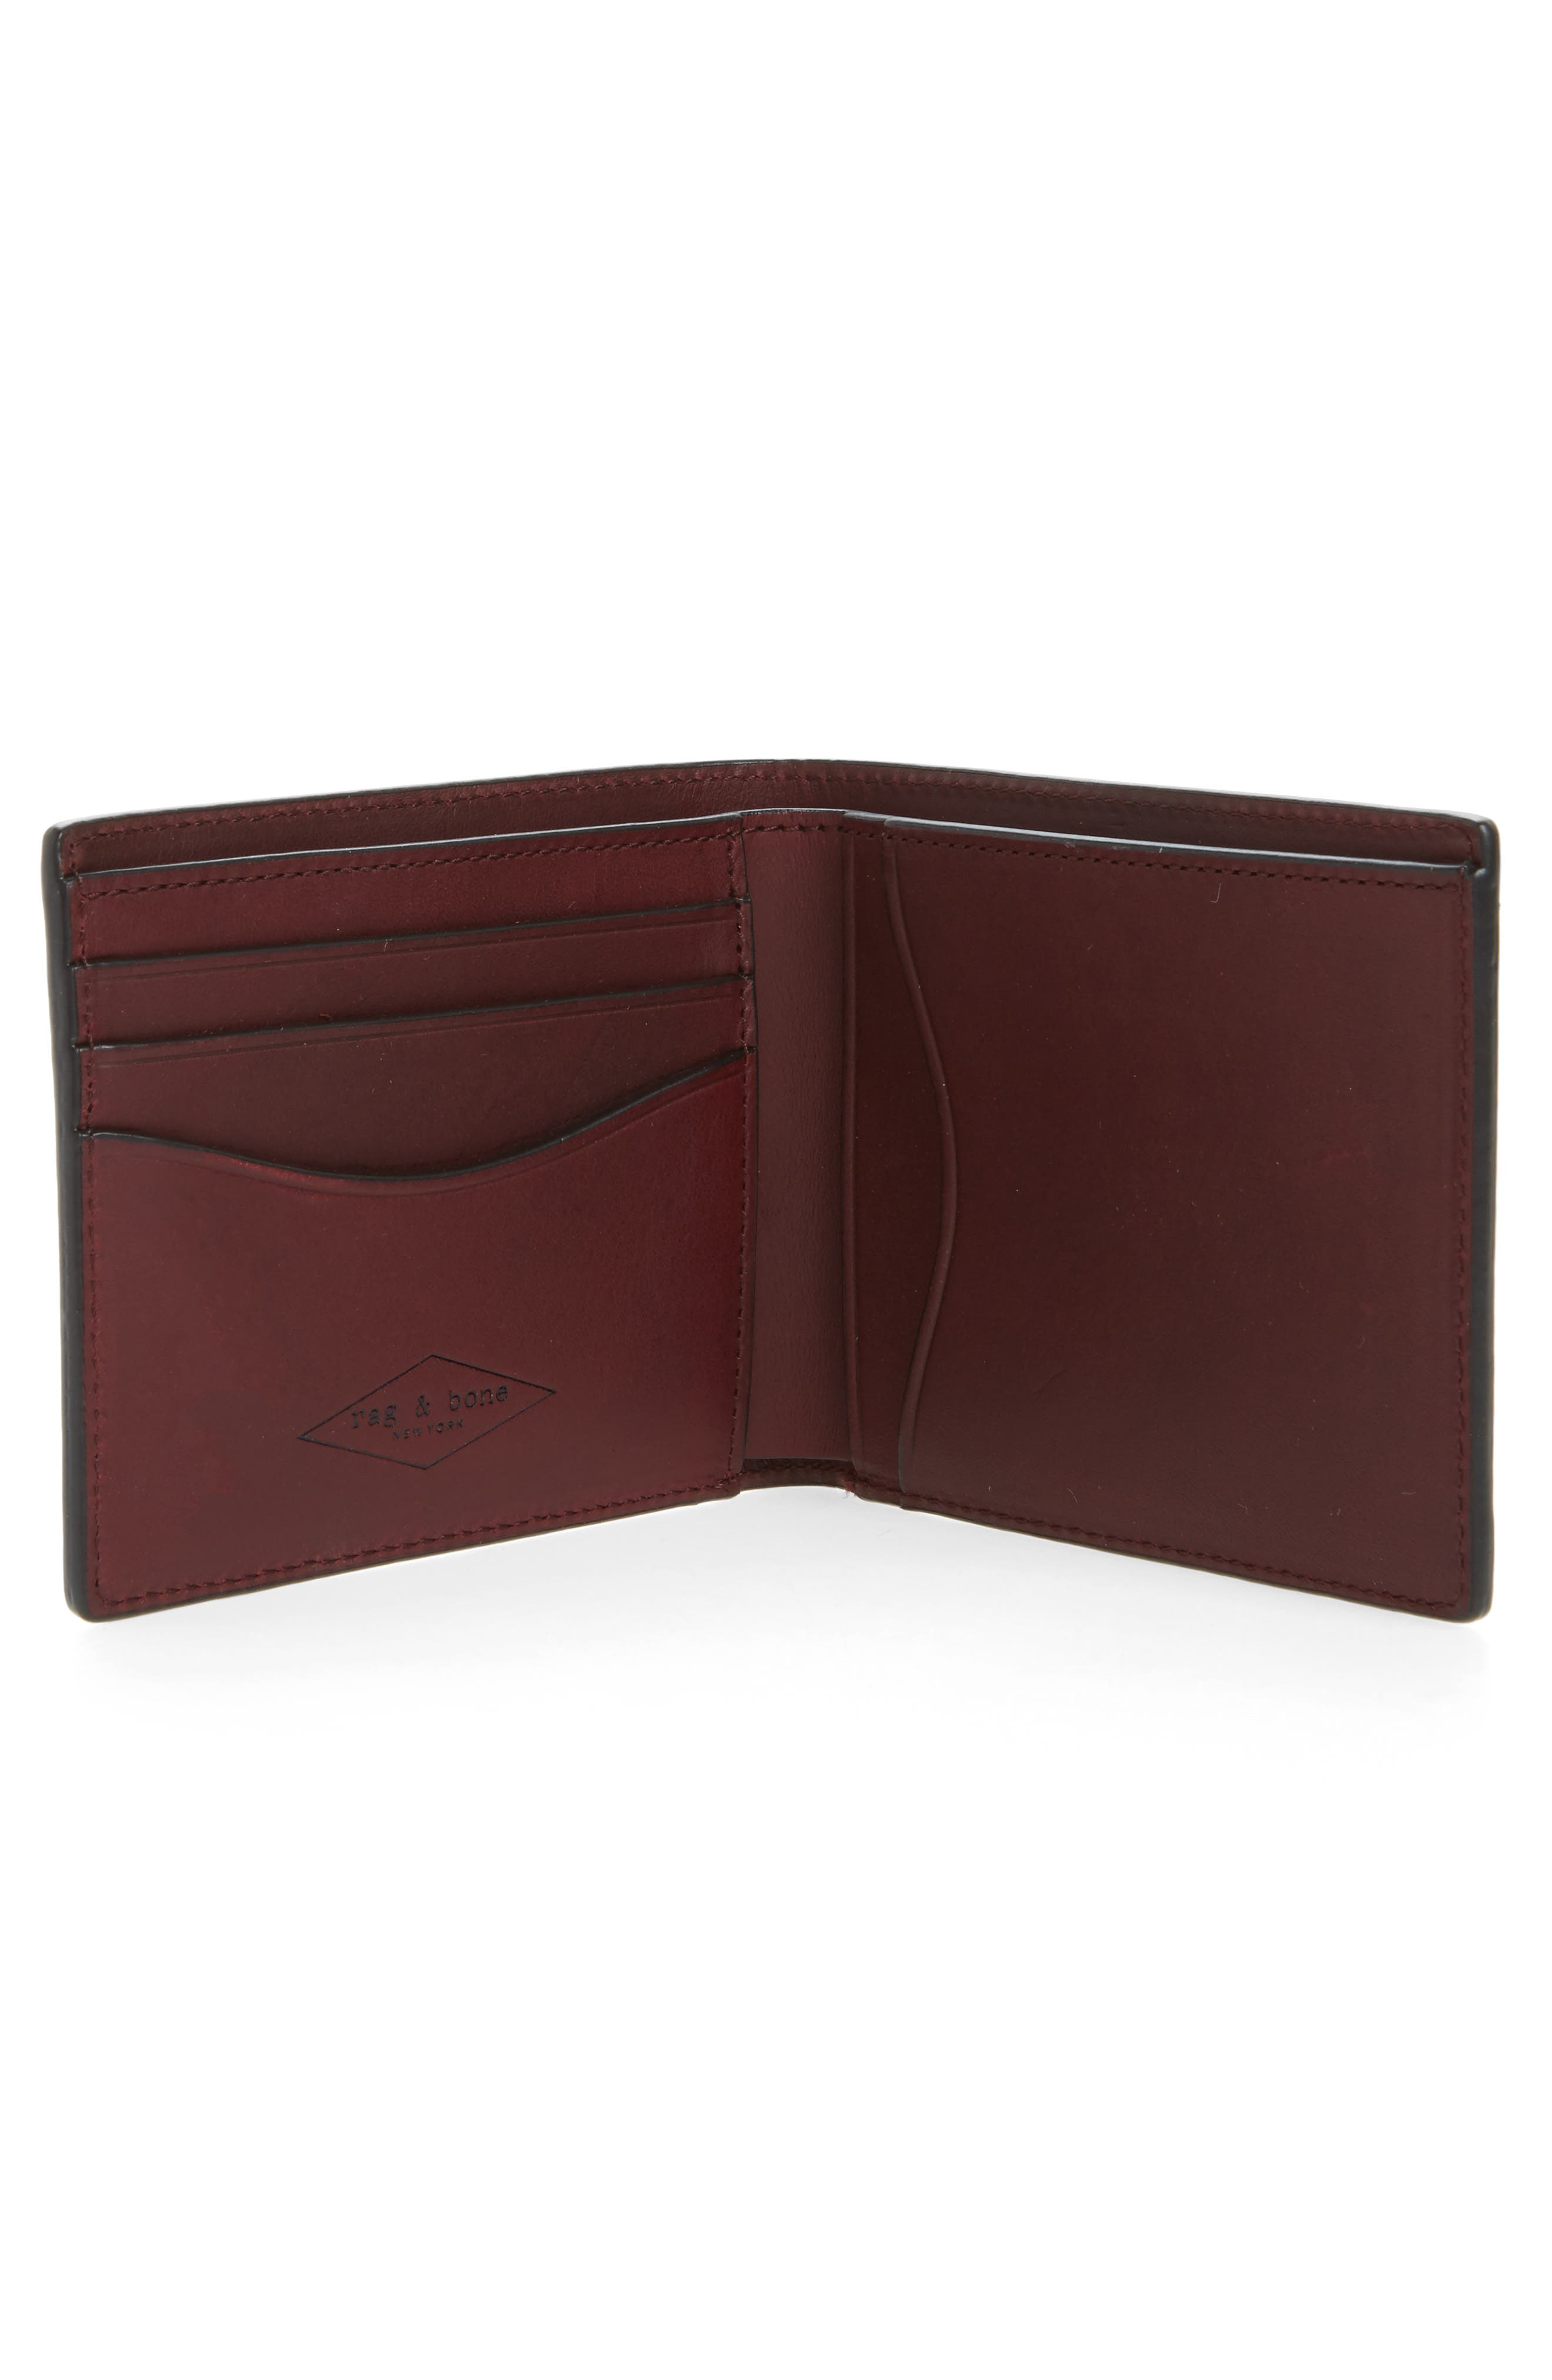 Hampshire Bifold Leather Wallet,                             Alternate thumbnail 2, color,                             Ox Blood